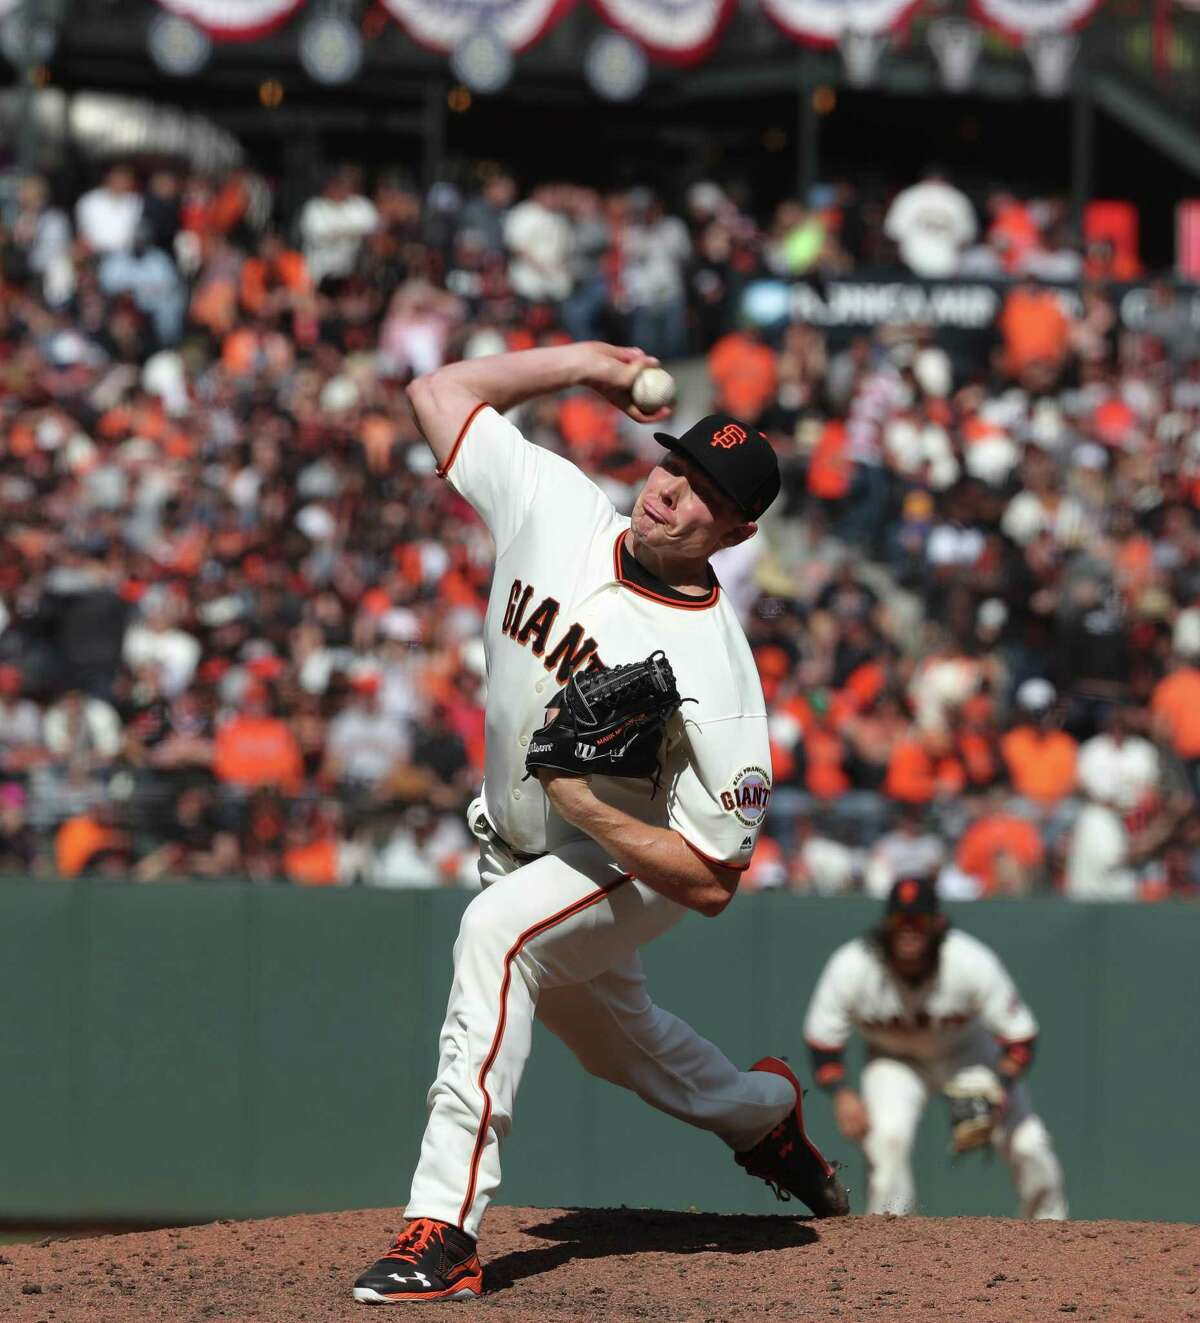 Giants' closer Mark Melancon throws in the ninth inning as the San Francisco Giants went on to beat the Arizona Diamondbacks 4-1 in their home opener at AT&T Park in San Francisco, Calif. on Mon. April 10, 2017.